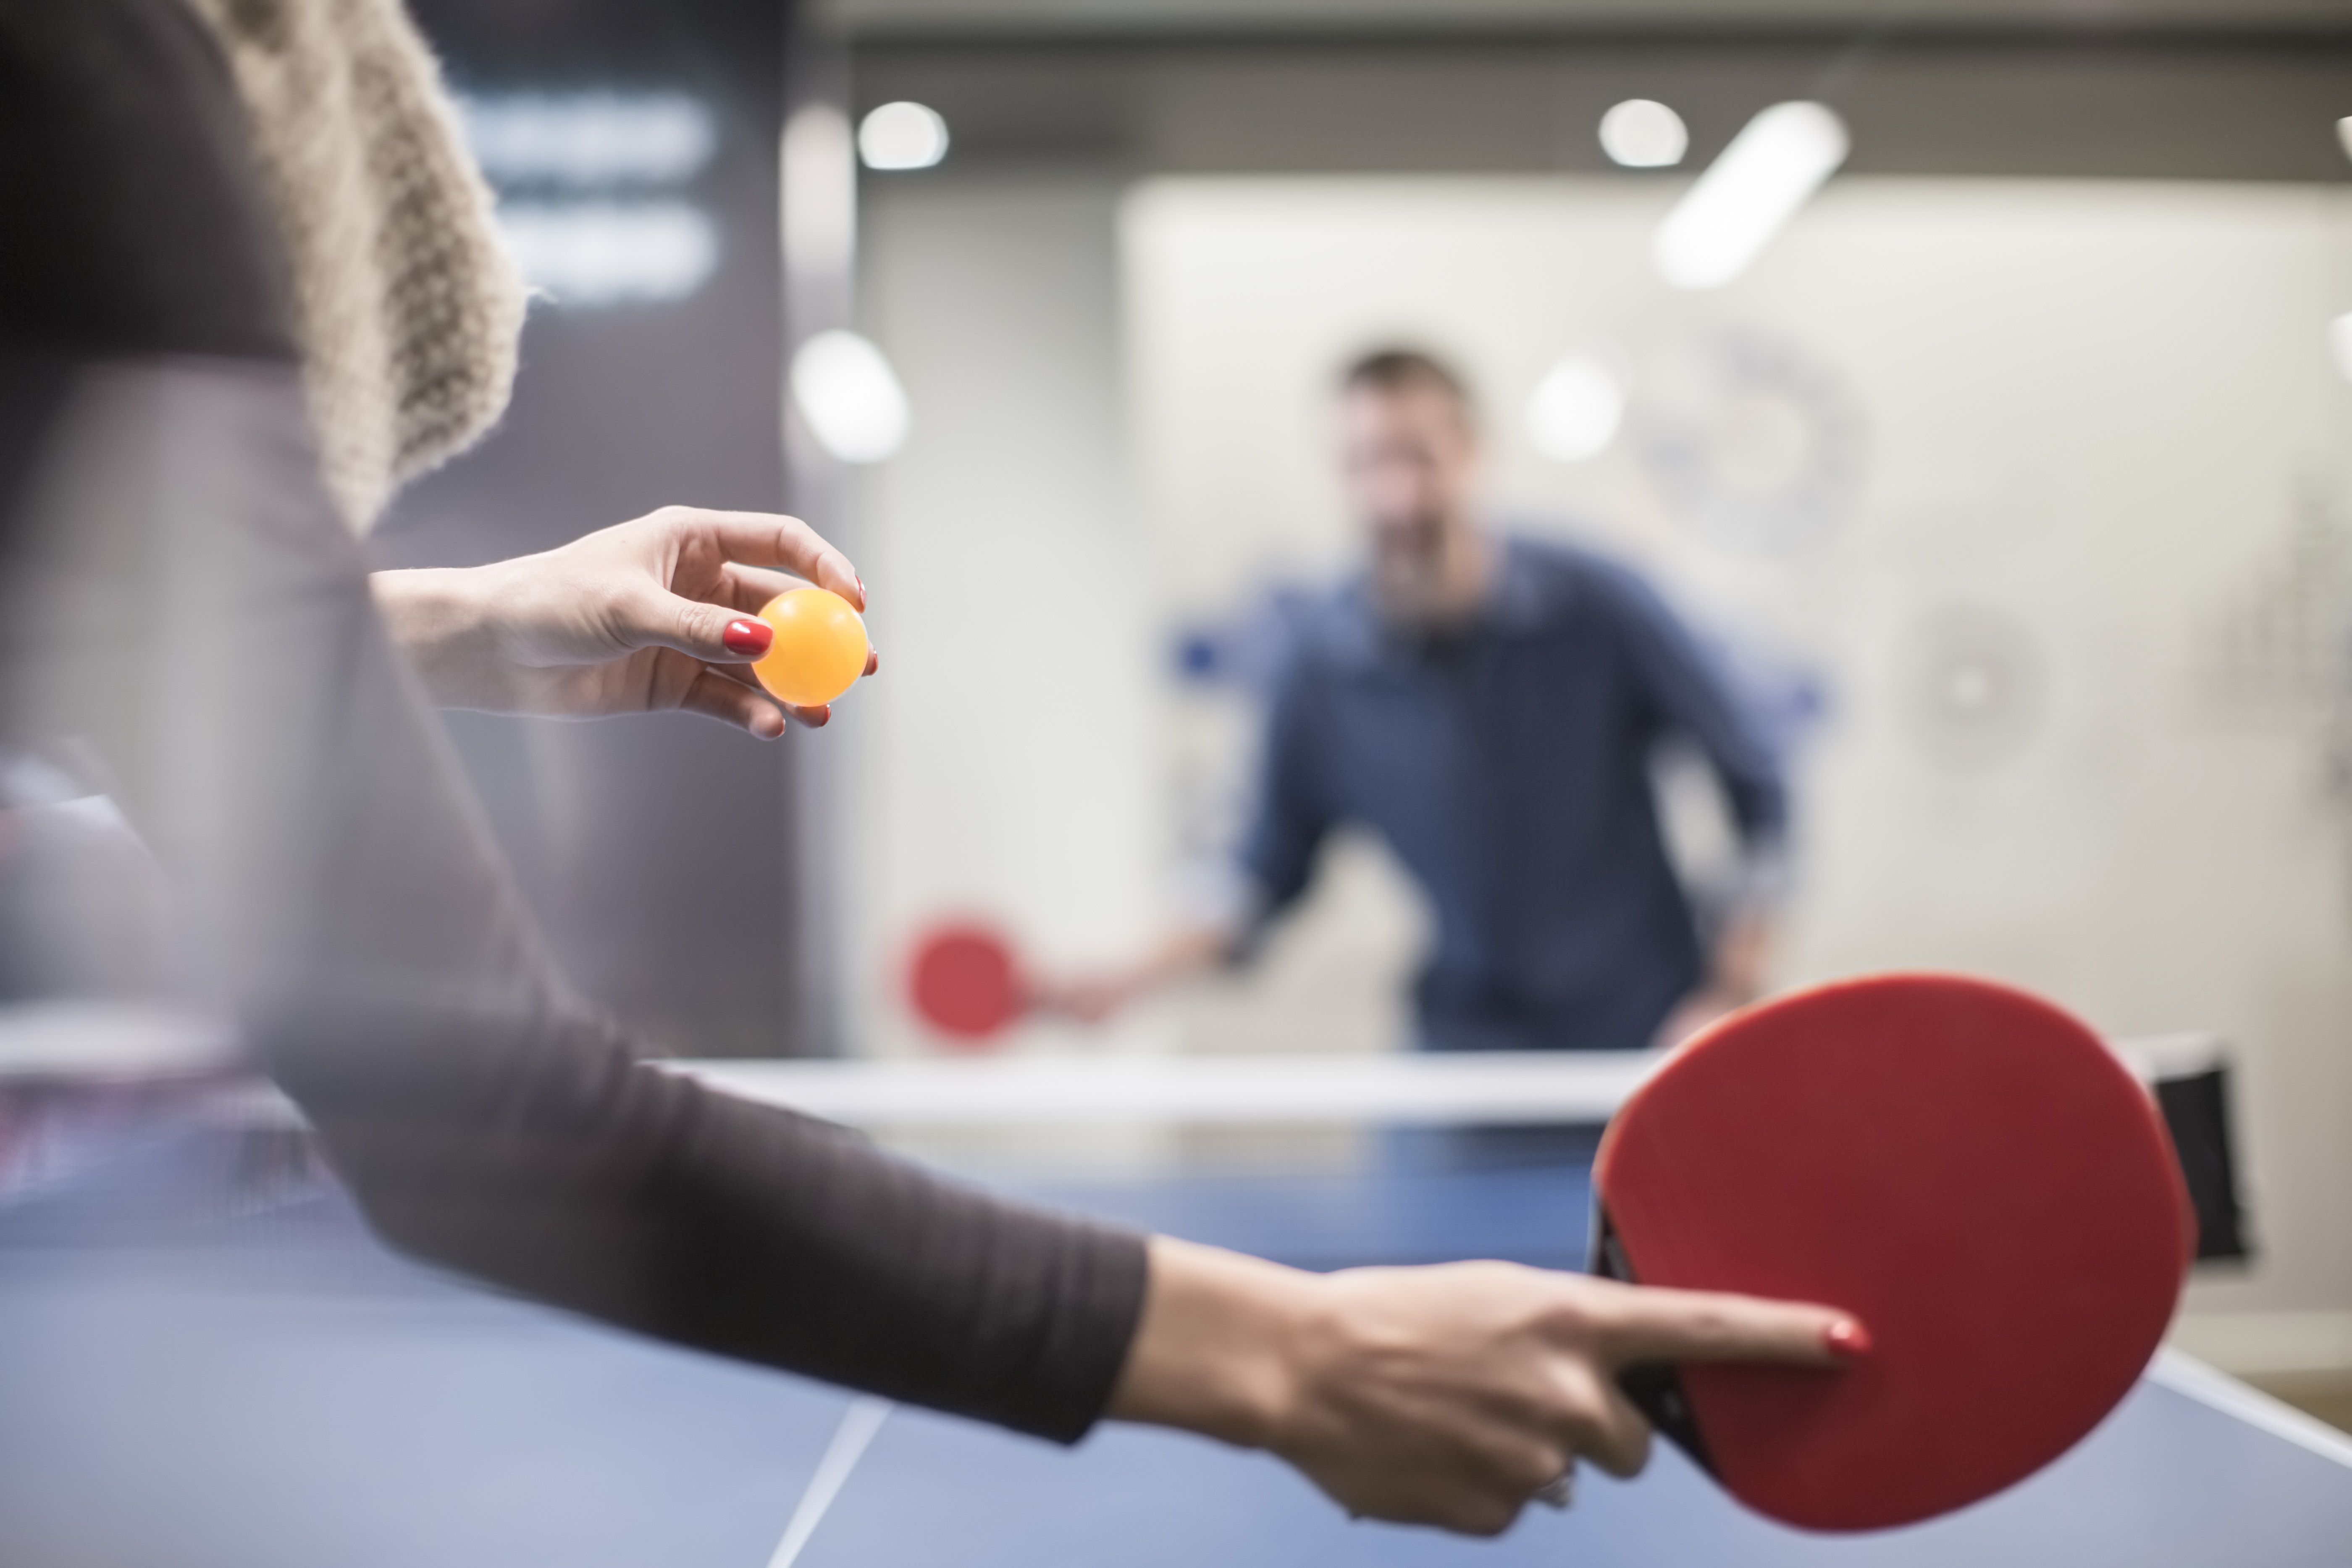 How to Avoid Injuries in Ping-Pong